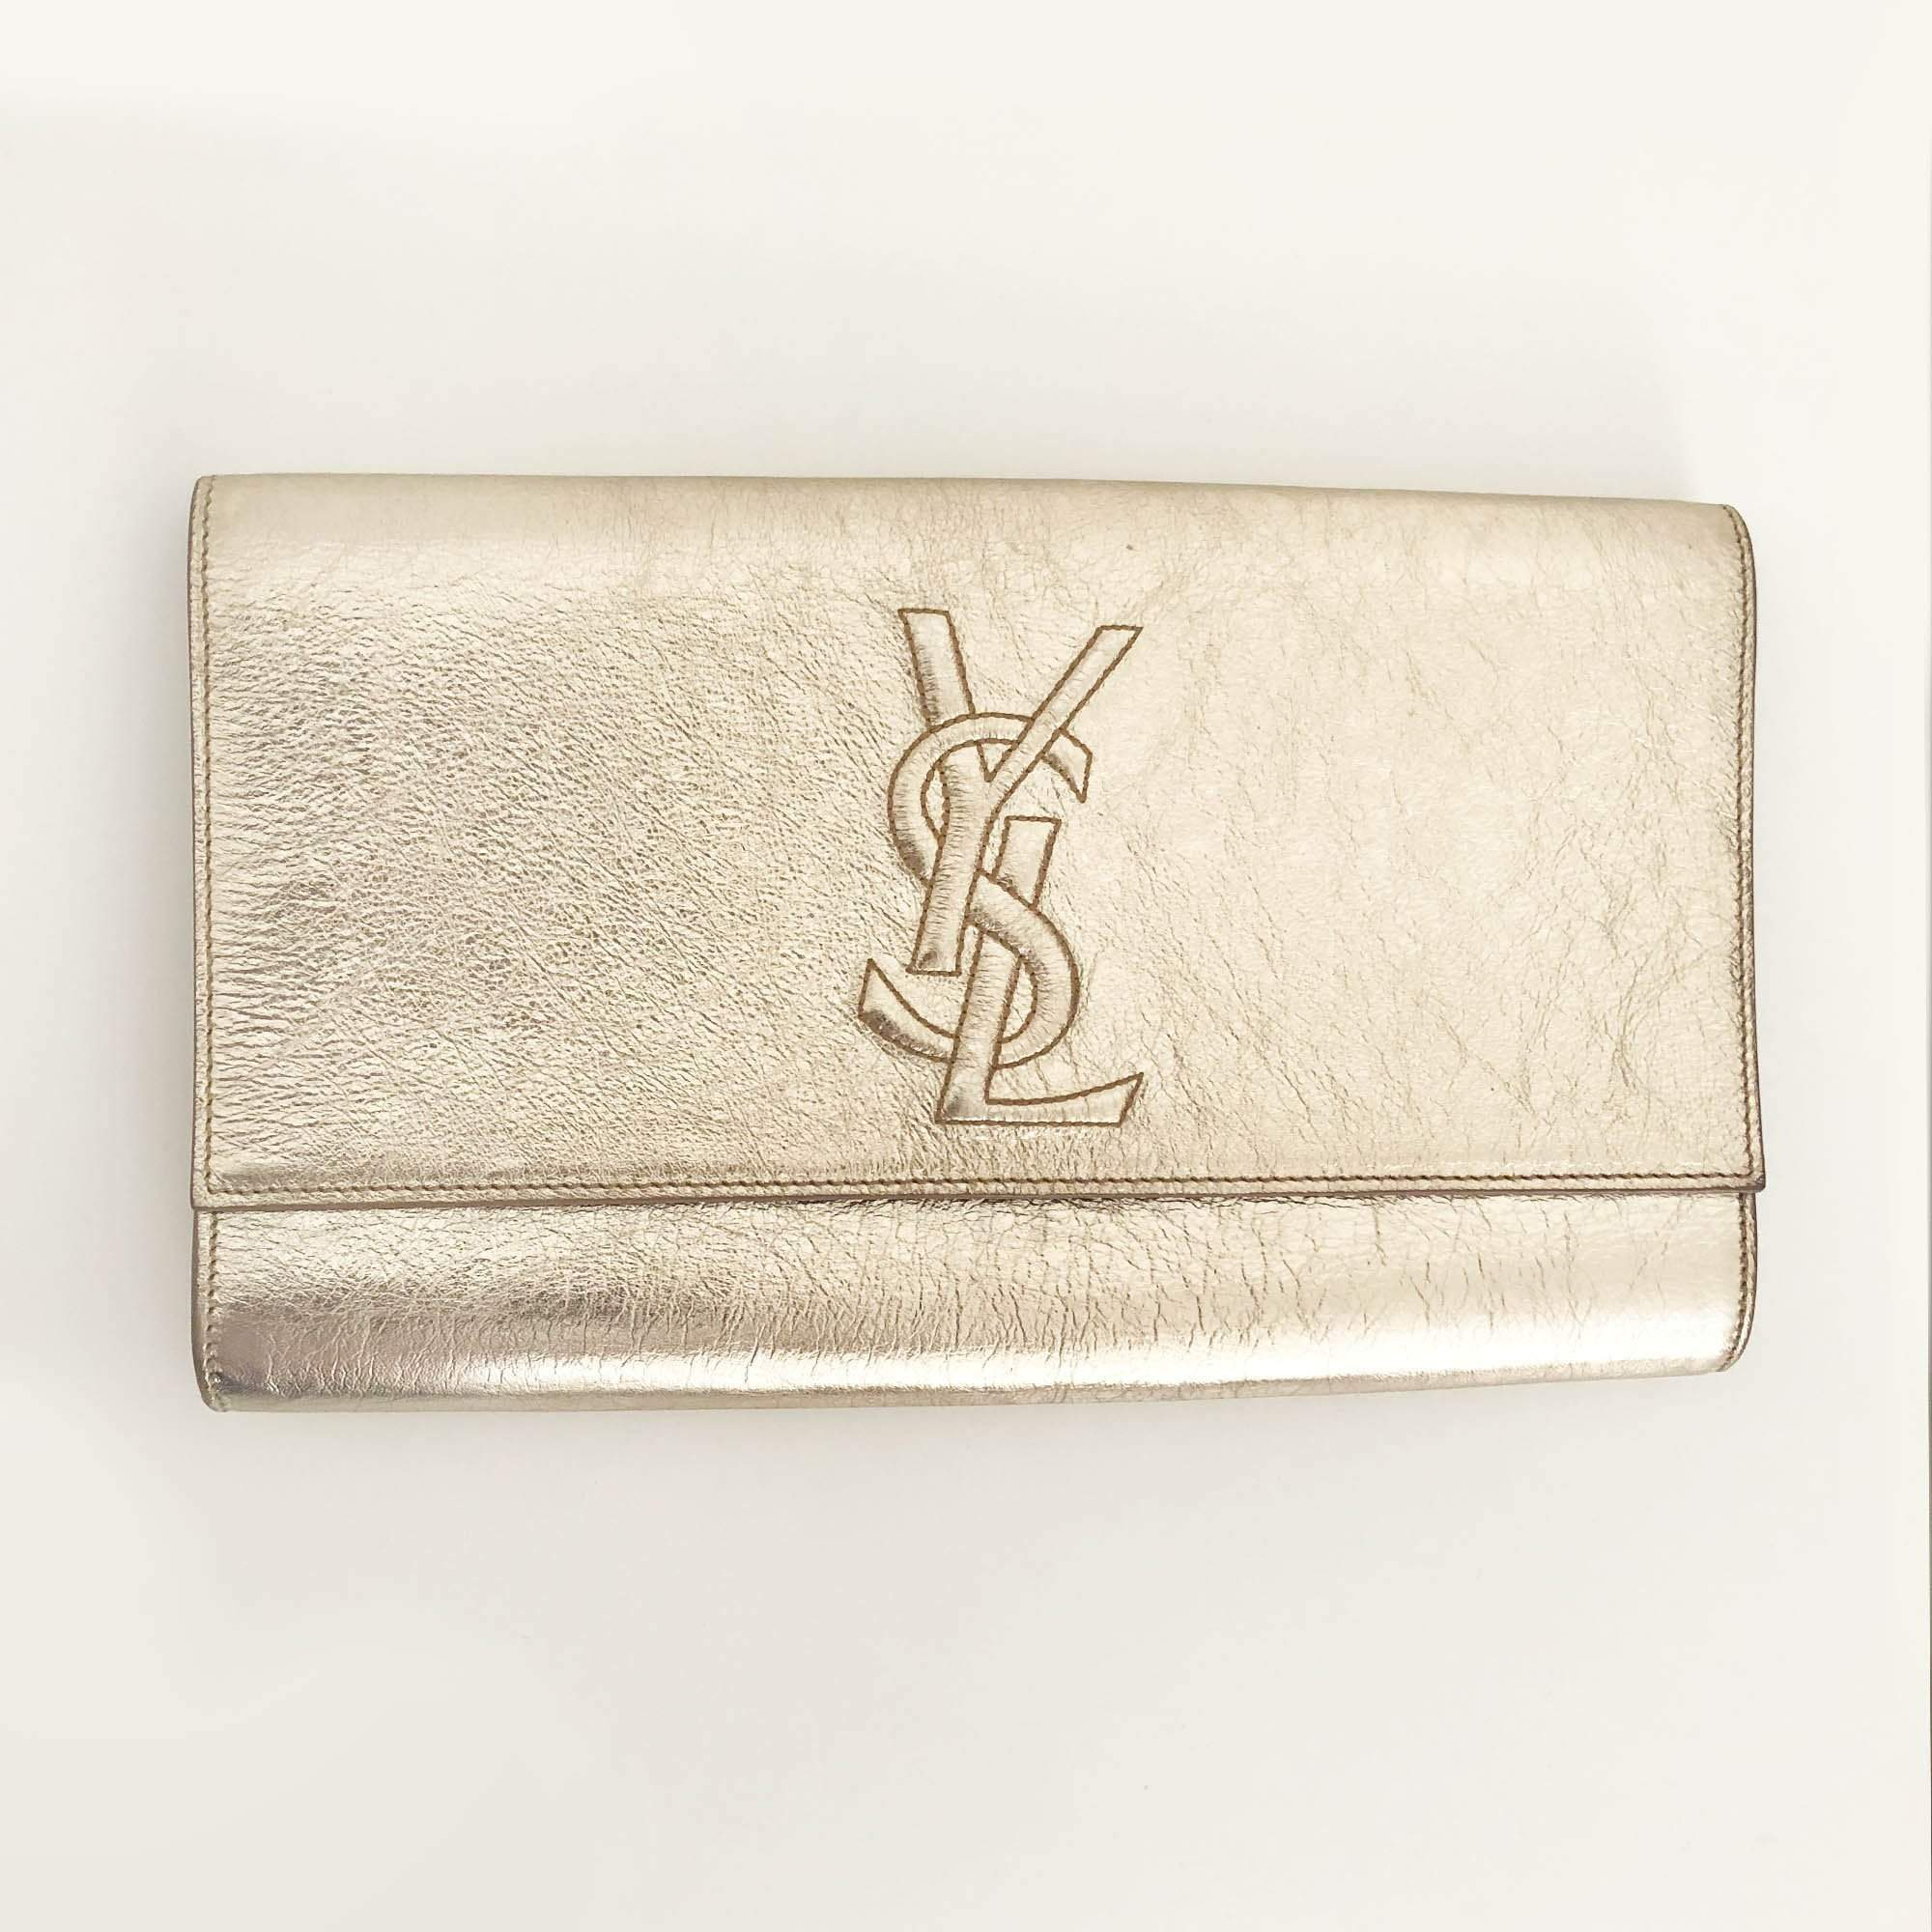 Saint Laurent Gold Textured Leather Clutch